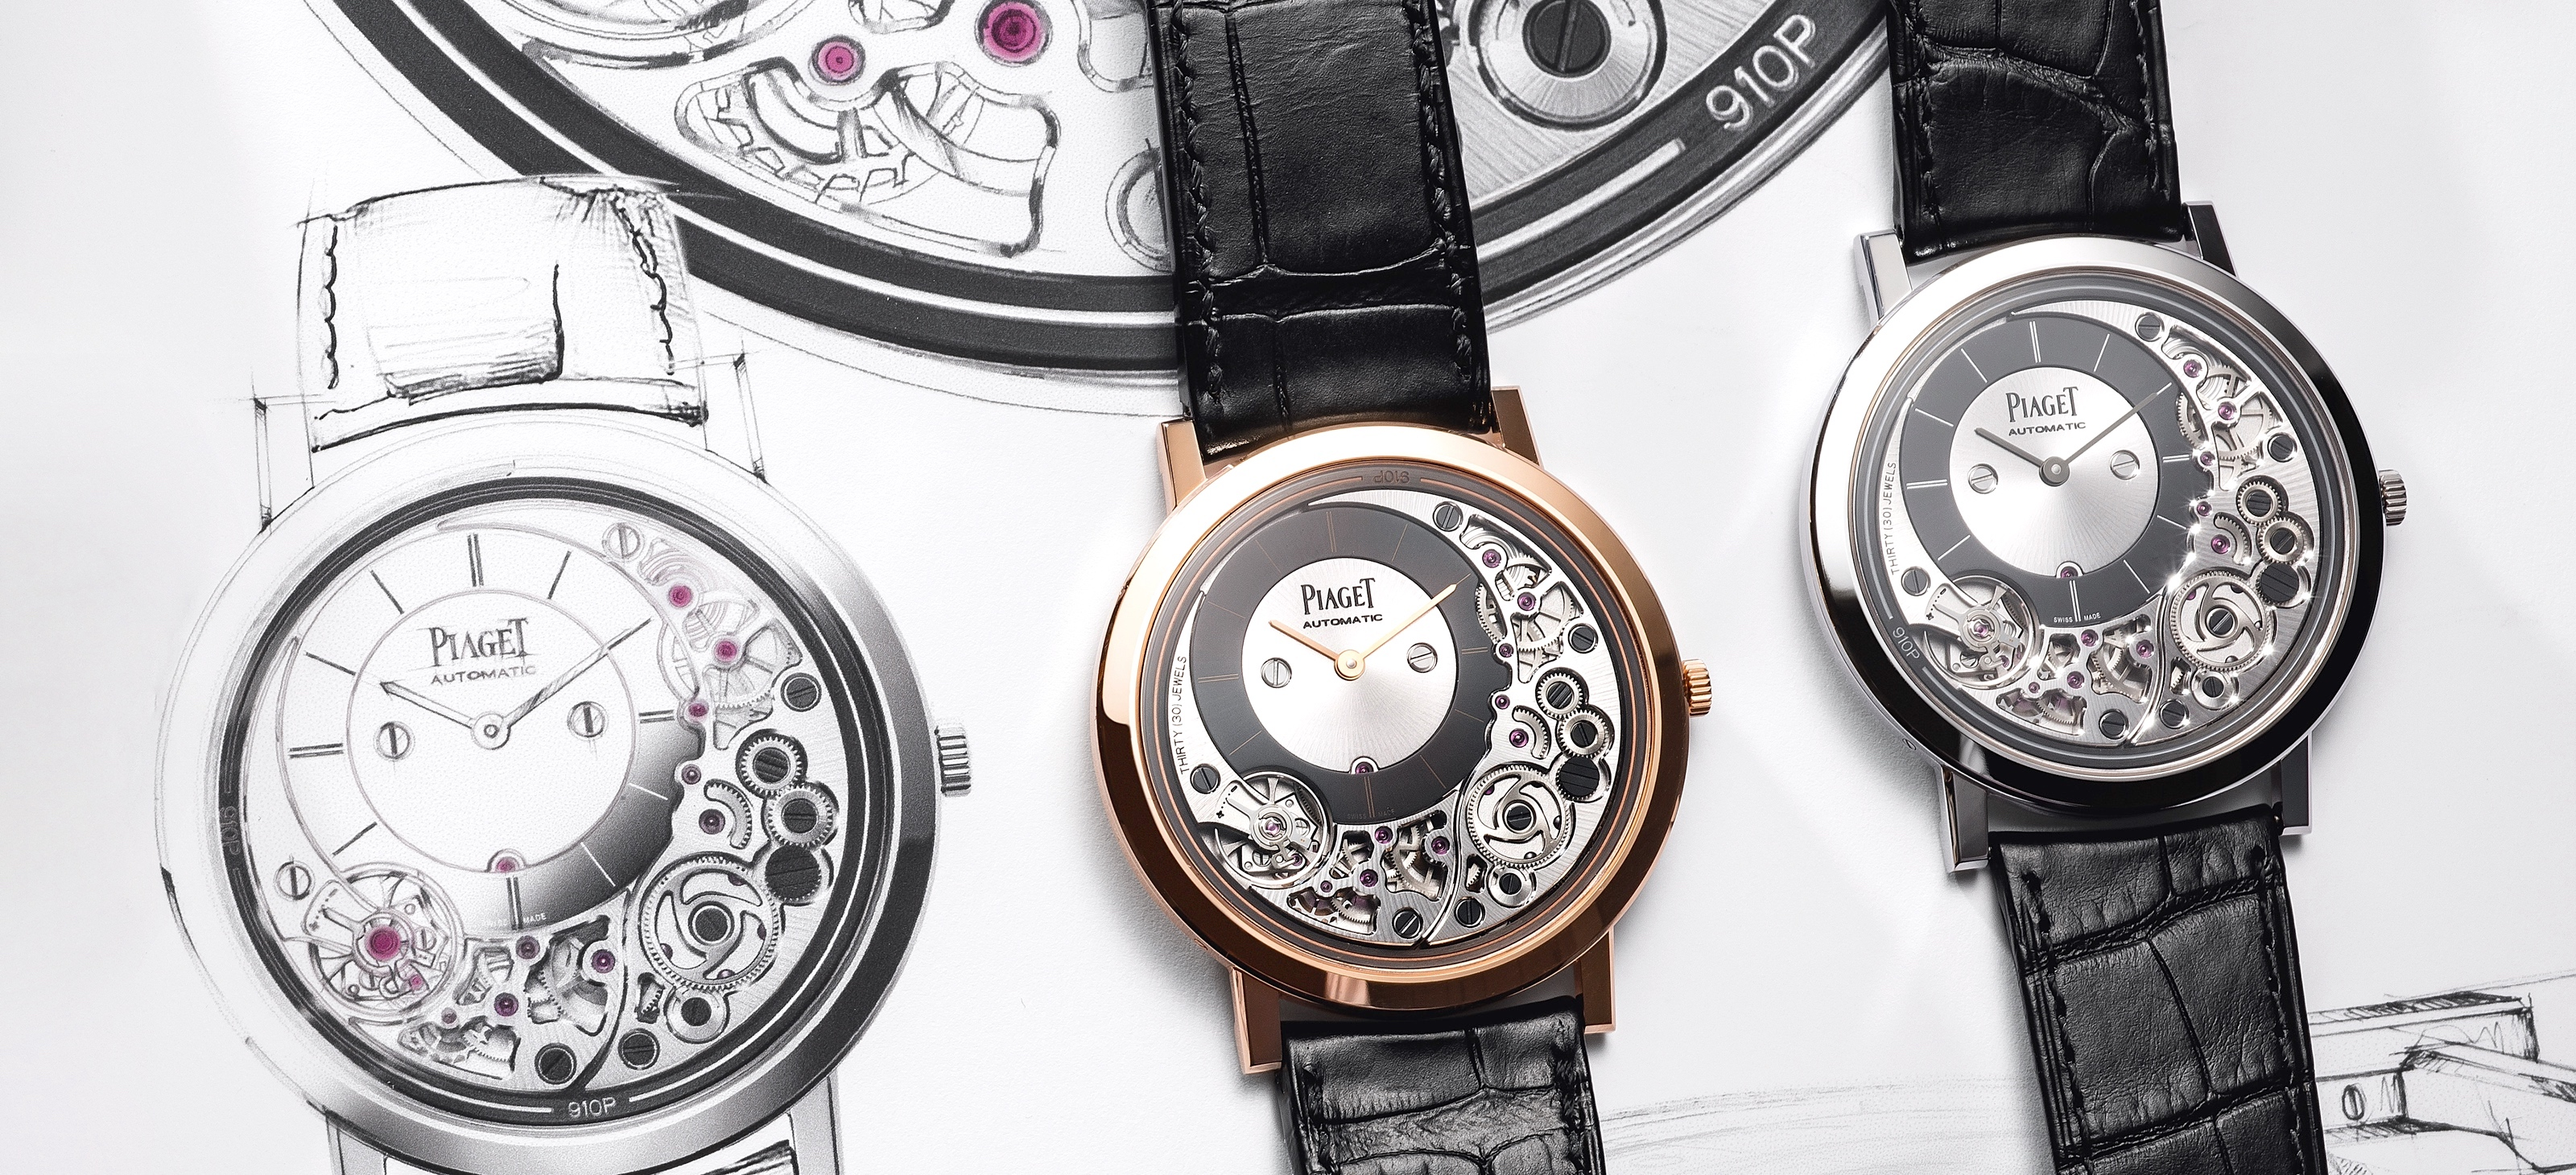 Piaget Altiplano Ultimate Automatic 910P - cover